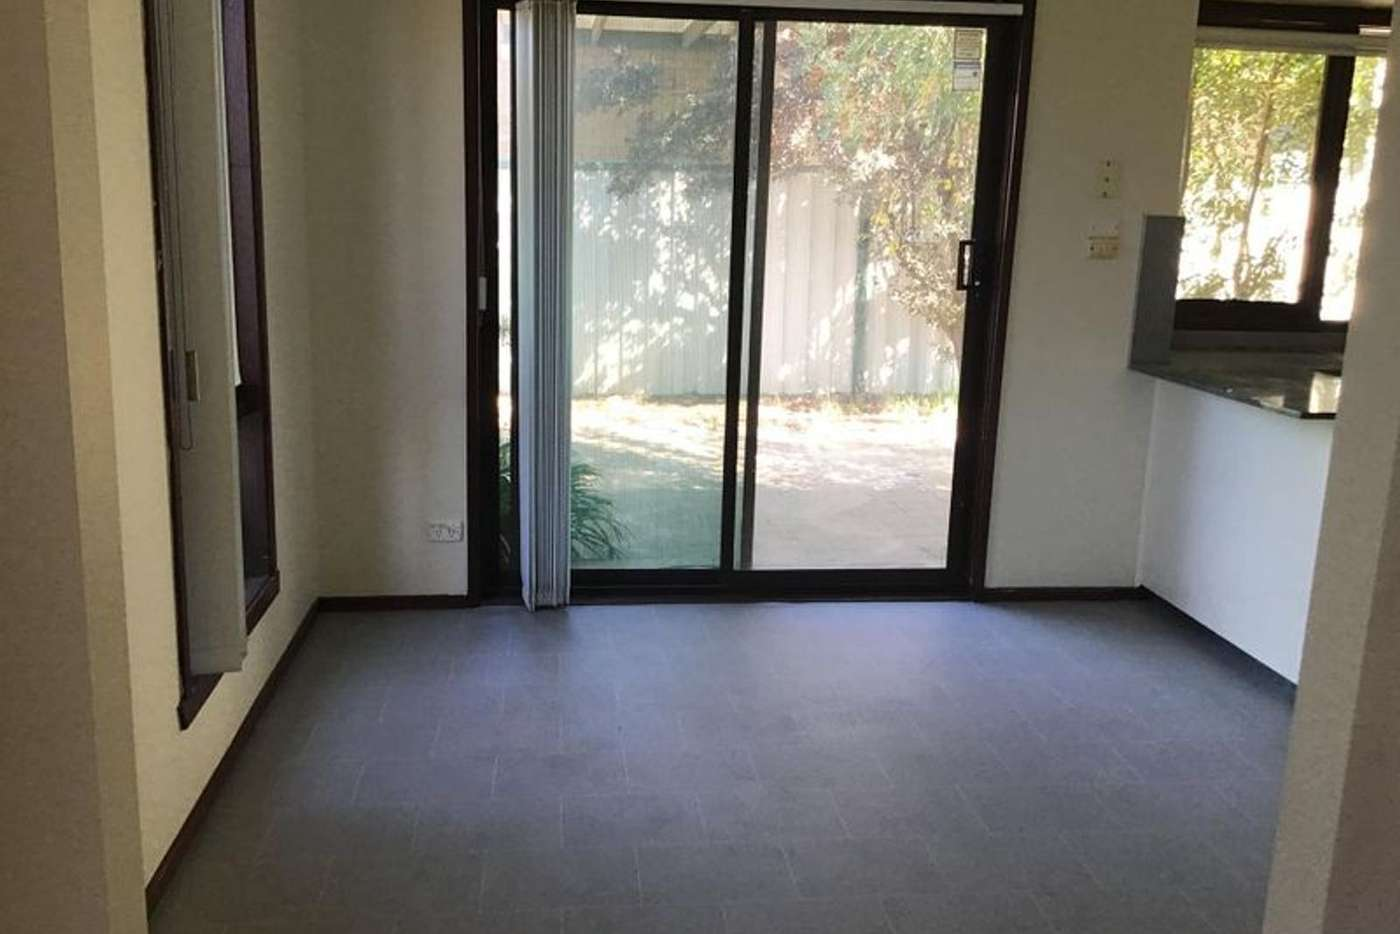 Fifth view of Homely house listing, 12 Downham Way, Wyndham Vale VIC 3024